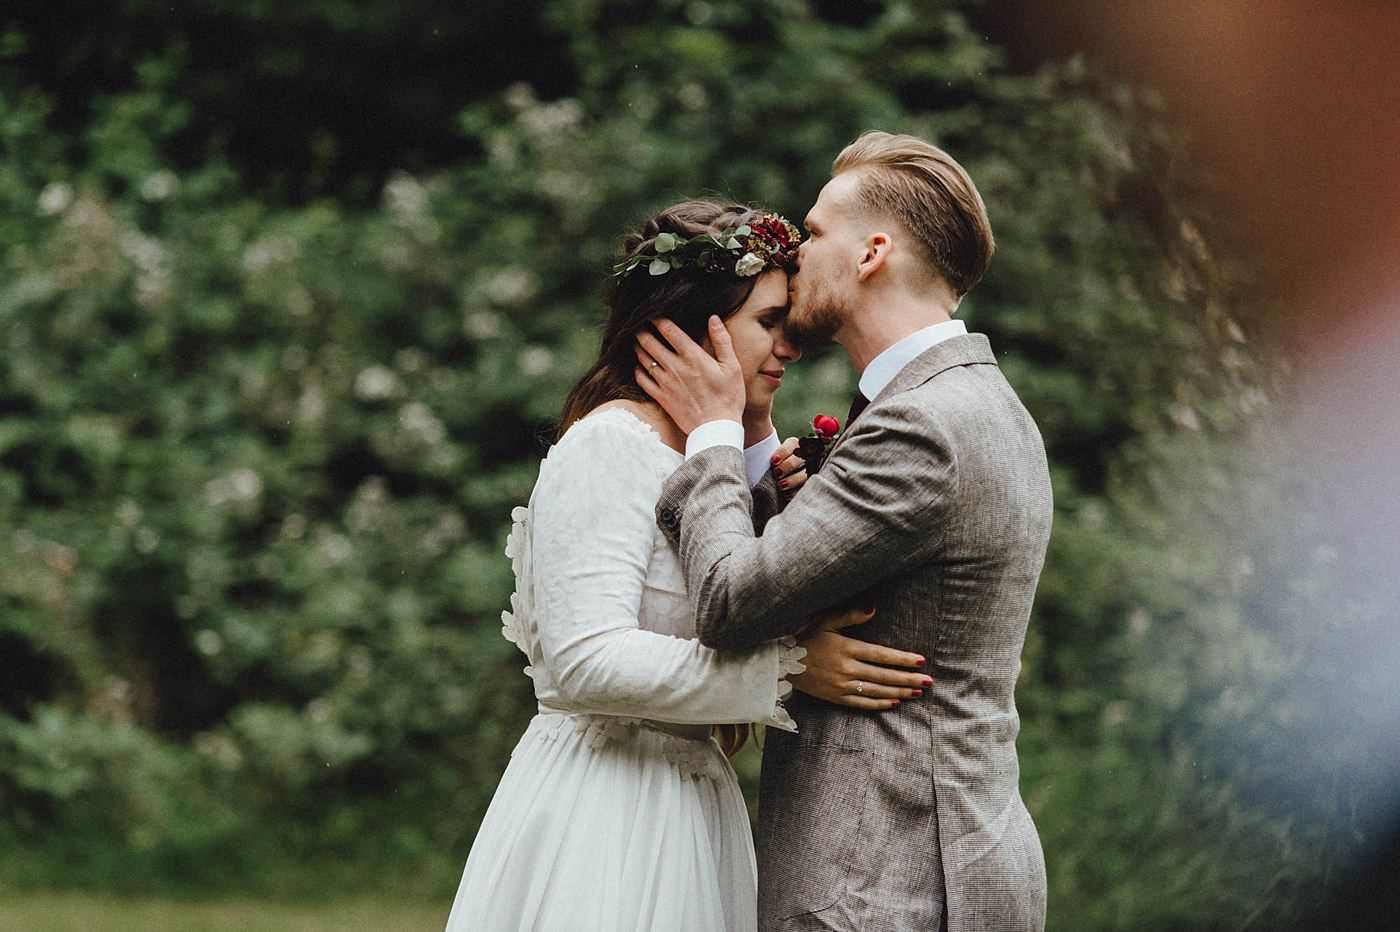 urban-elopement-wedding-125 Merve & Nils emotionales Elopement - Wedding Wesel & Schottlandurban elopement wedding 125 1